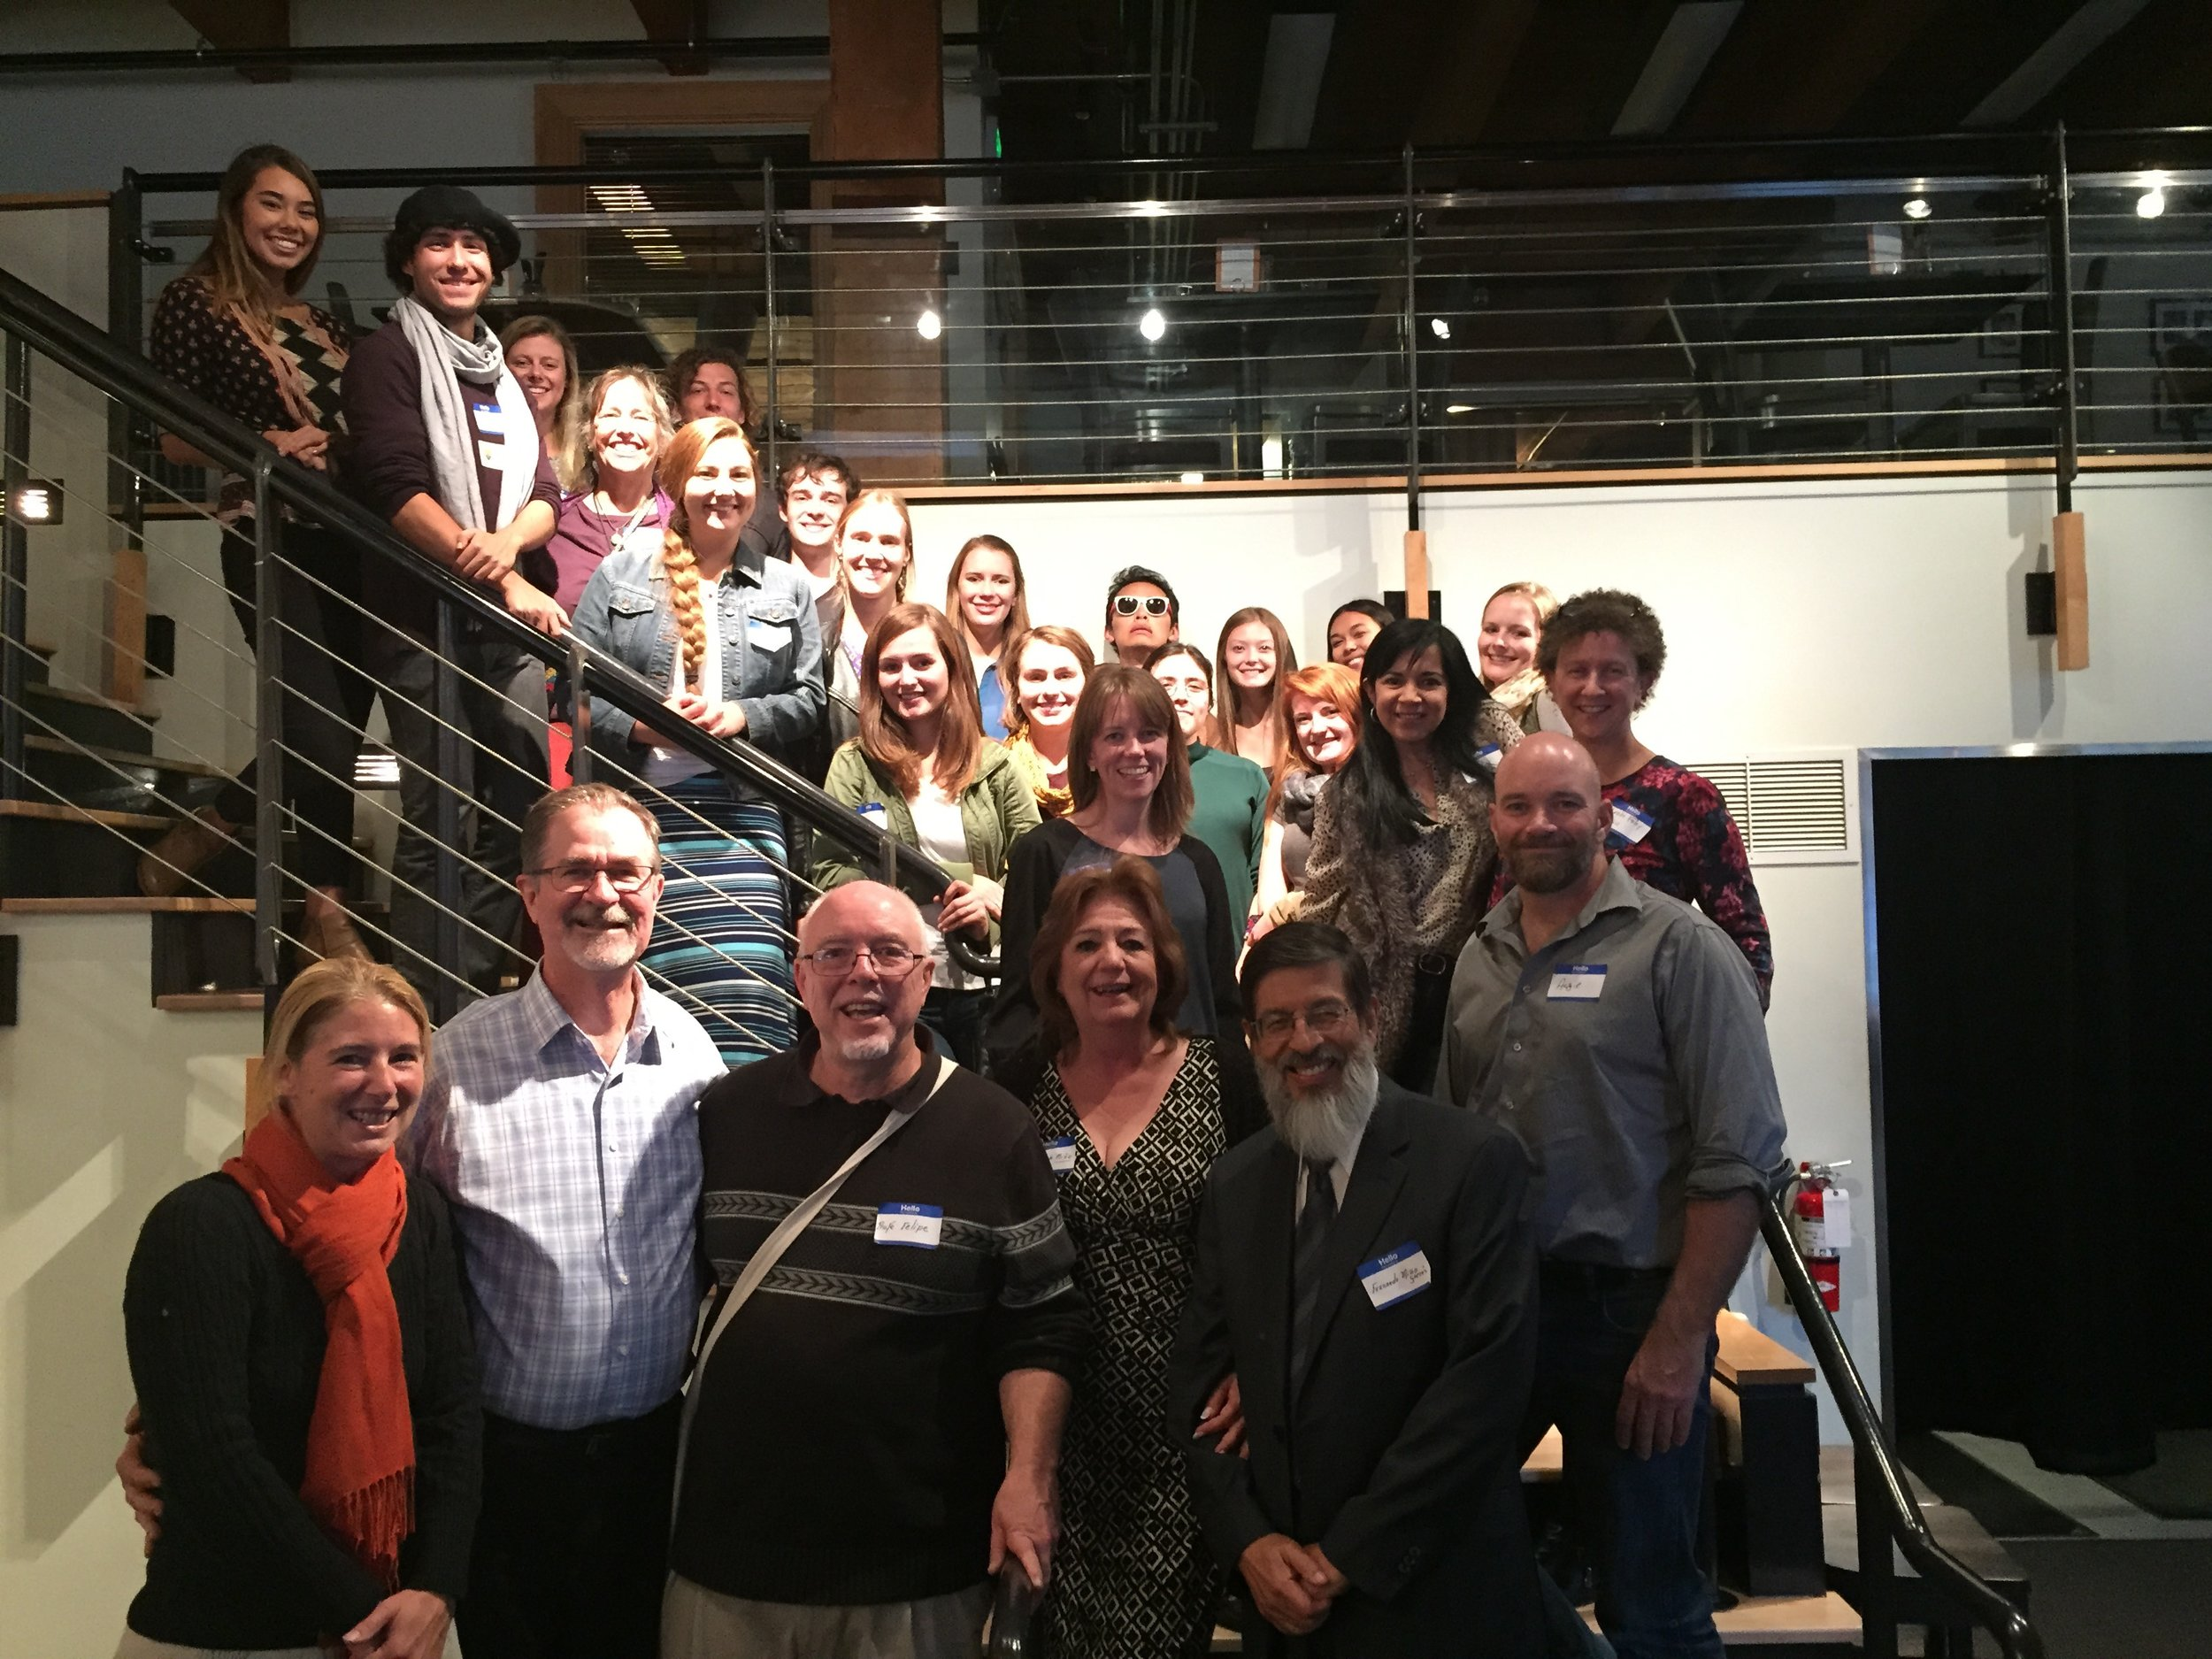 A fun group marks ACLAS's 25th anniversary in Seattle, Washington.